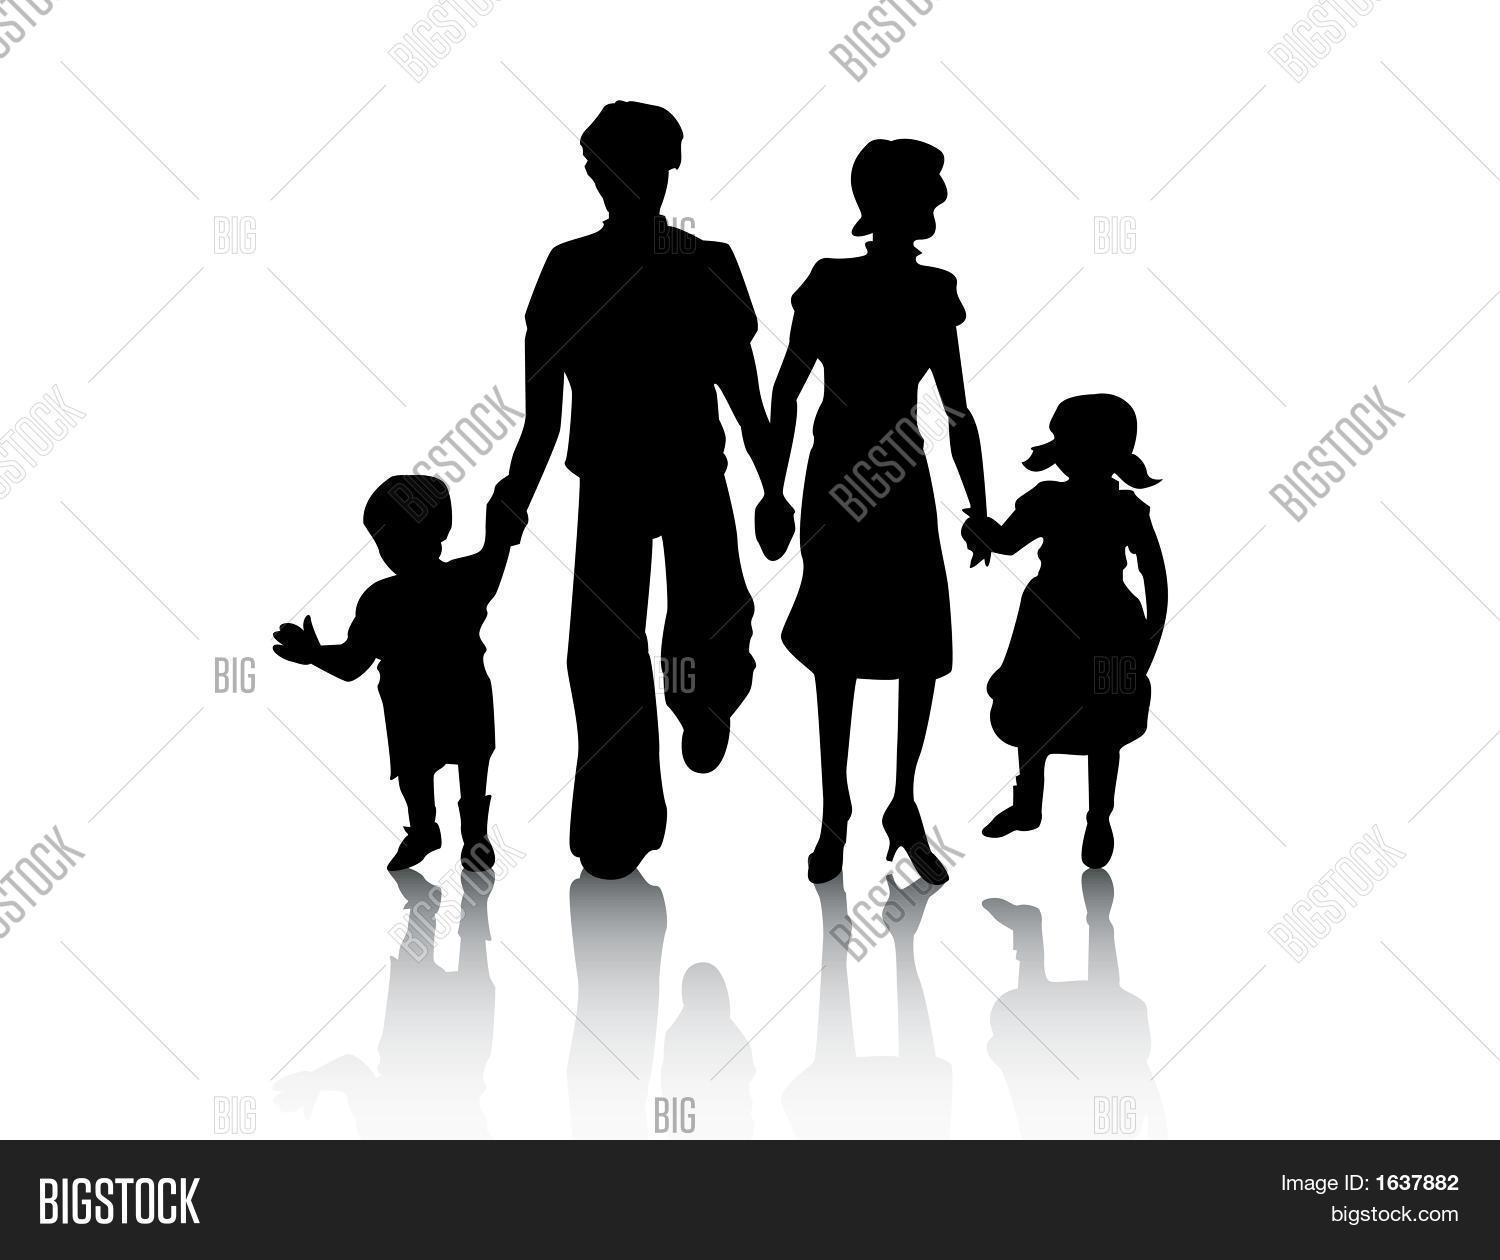 2d,art,black,bond,brother,clan,clip,clipart,concept,dad,drawing,familia feliz,family,family silhouette,father,figure,folk,graphics,group,hands,happy,home,illustration,kin,line,love,mom,mother,offspring,path,reflection,relation,relationship,render,representation,shadow,sibling,silhouette,sister,stick,symbol,tie,together,unite,united,white,whole